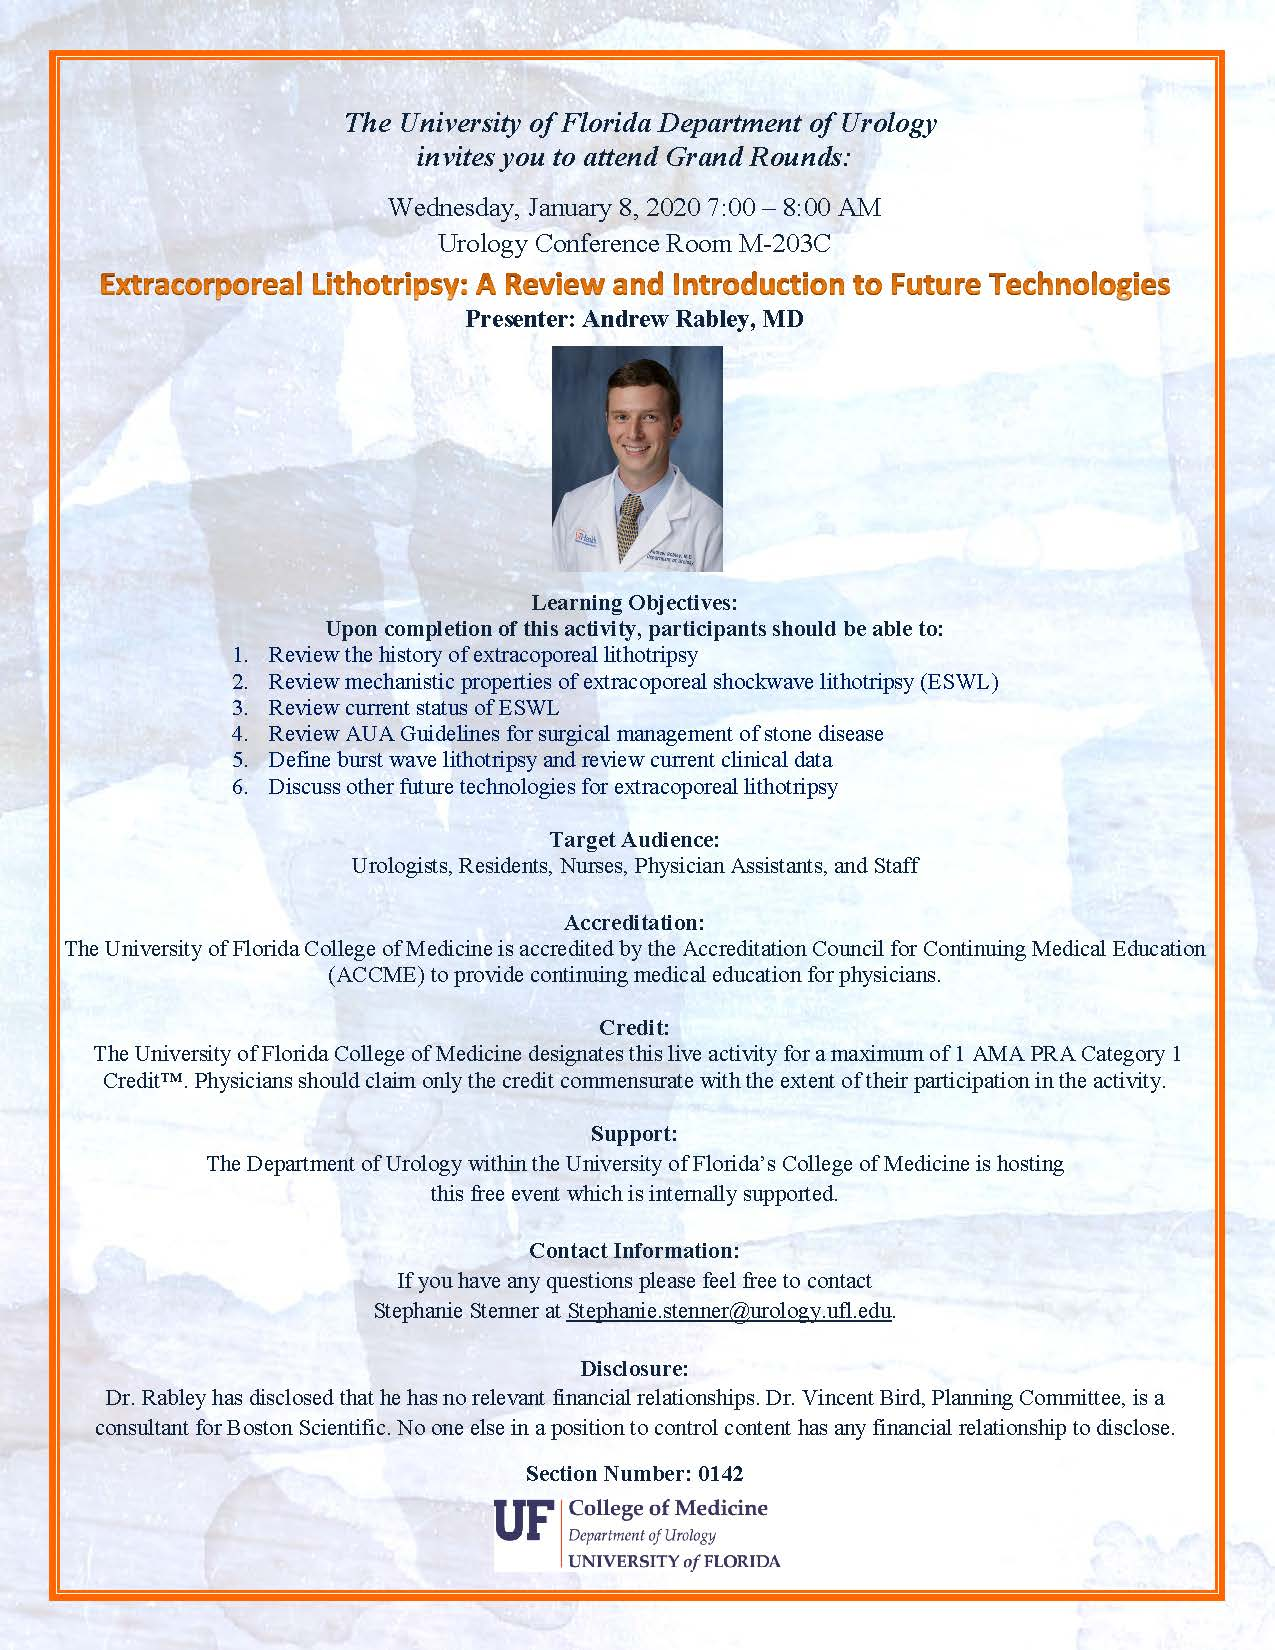 flyer for grand rounds